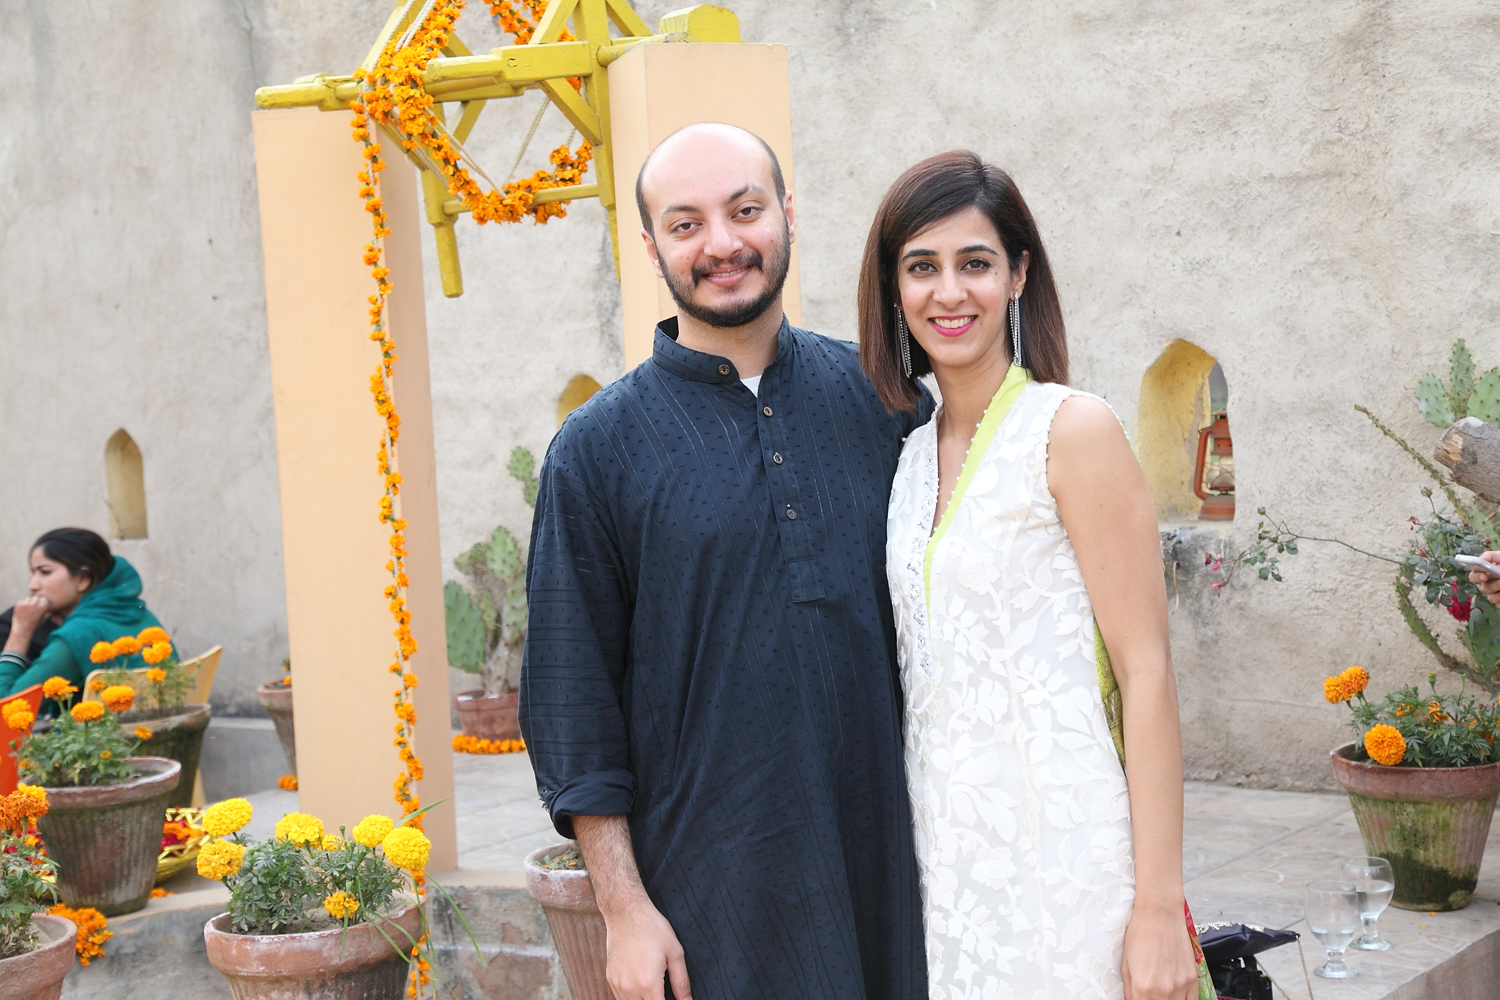 Abdullah Qureshi and Mariam Mushtaq